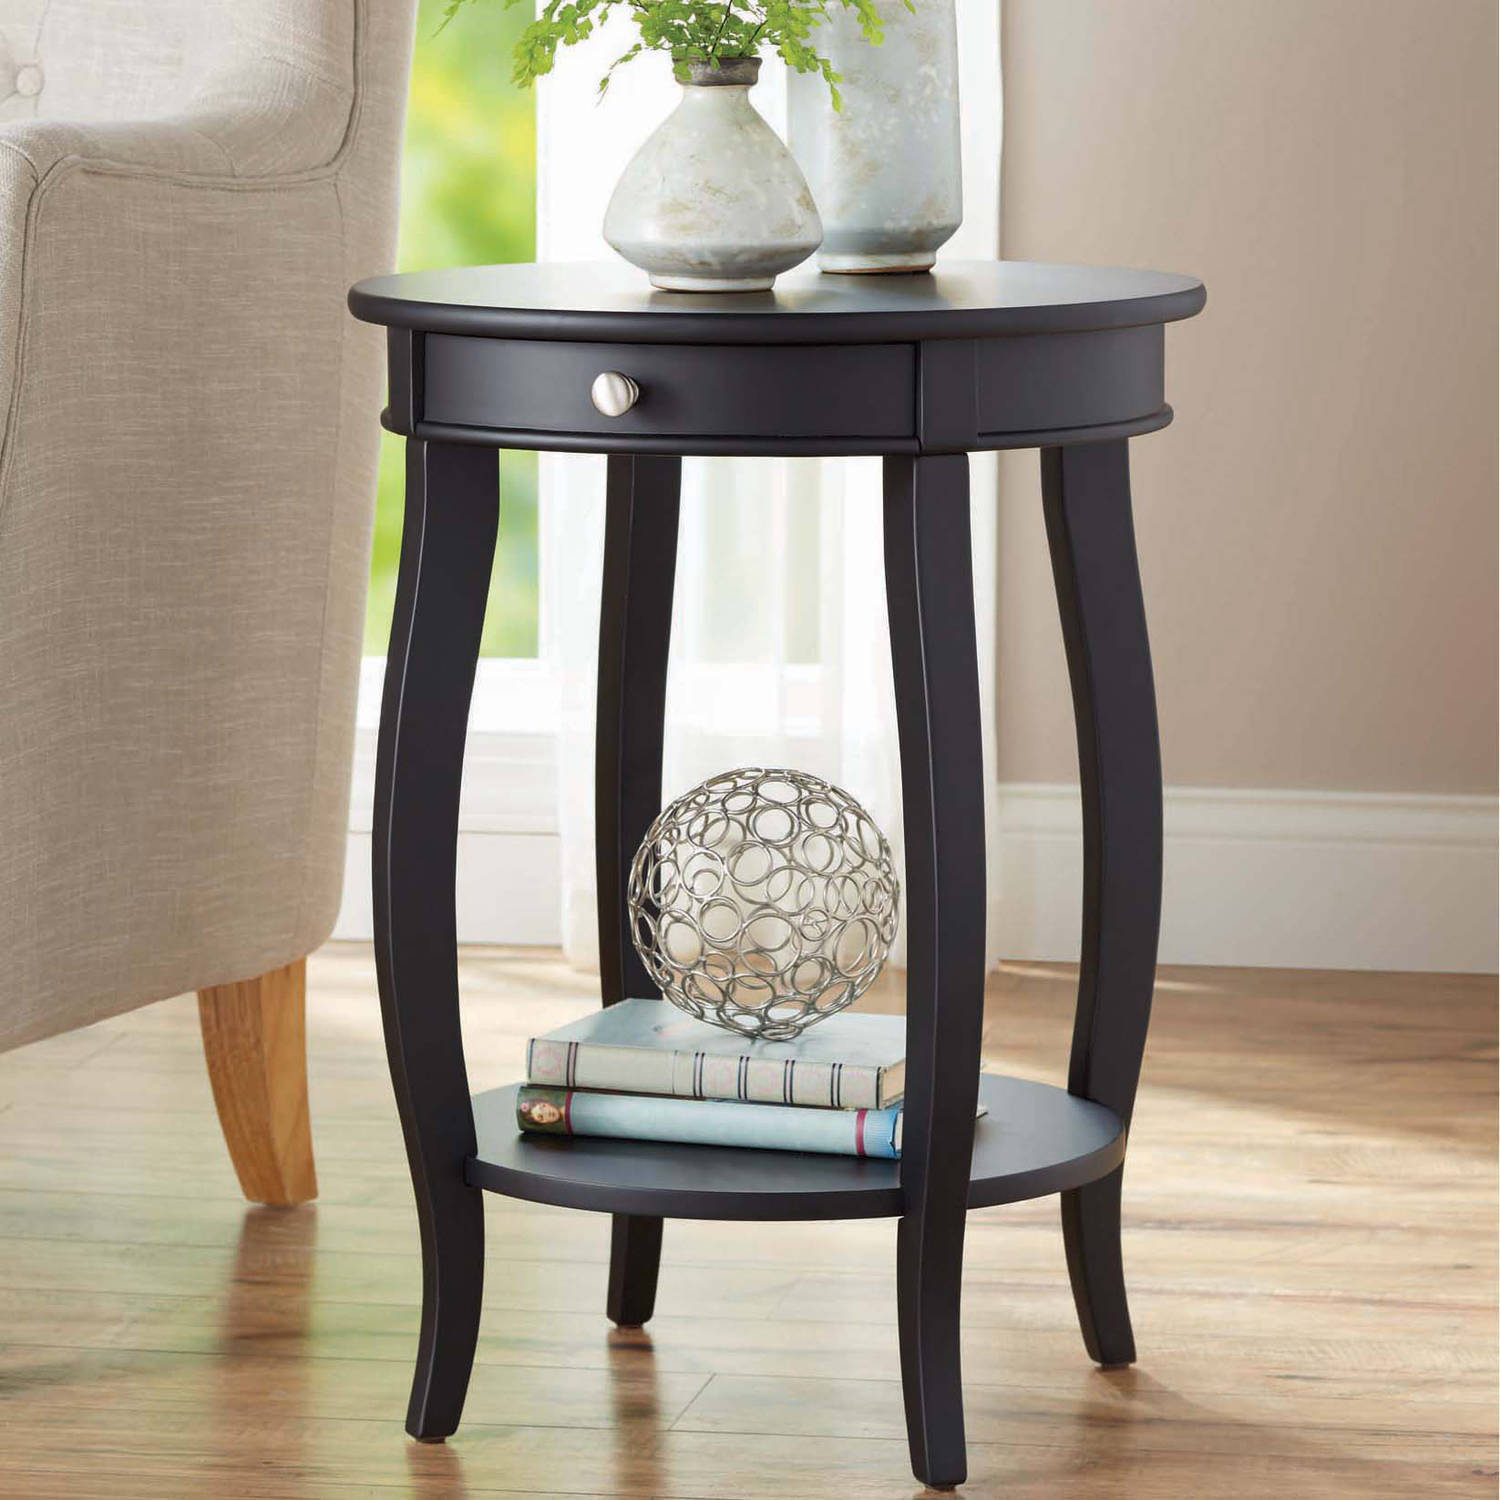 better homes gardens round accent table with drawer multiple tall black colors small silver console gold glass coffee phone outdoor egg chair target lamp clear acrylic side teal